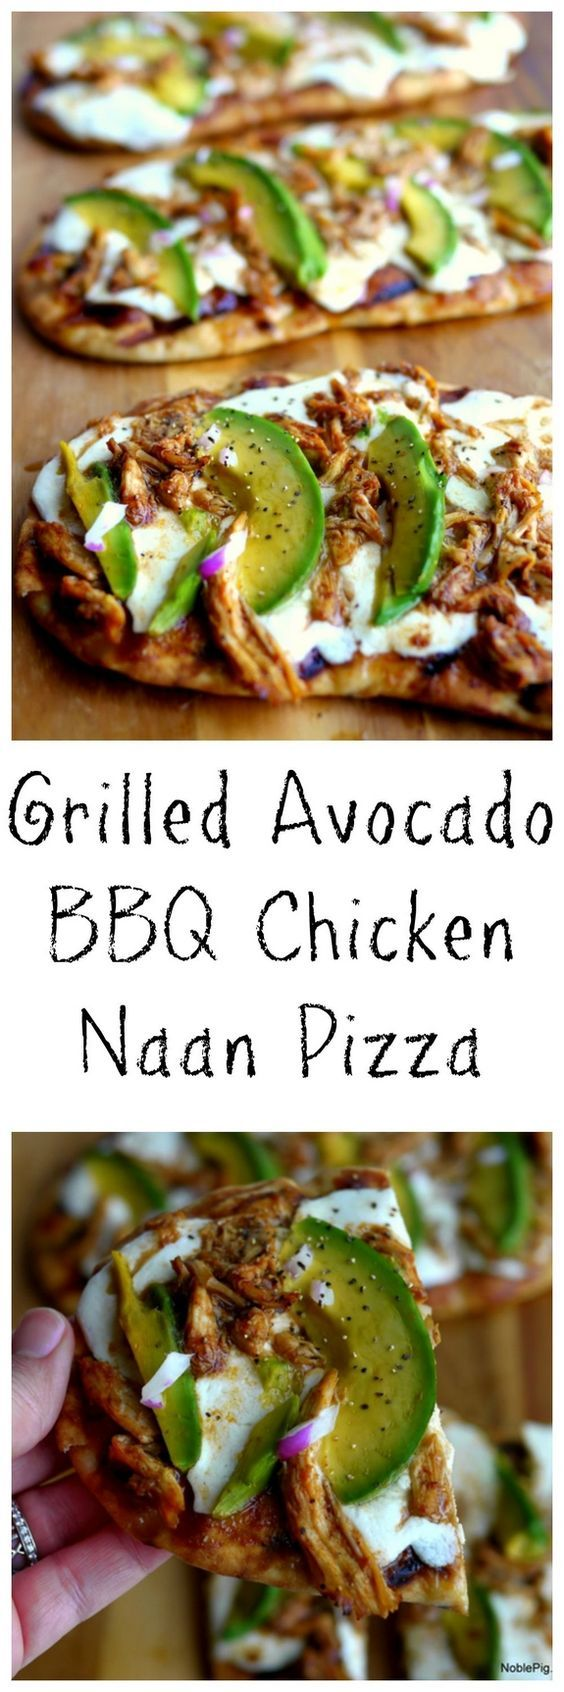 Grilled Avocado Barbecue Chicken Naan Pizza from NoblePig.com.